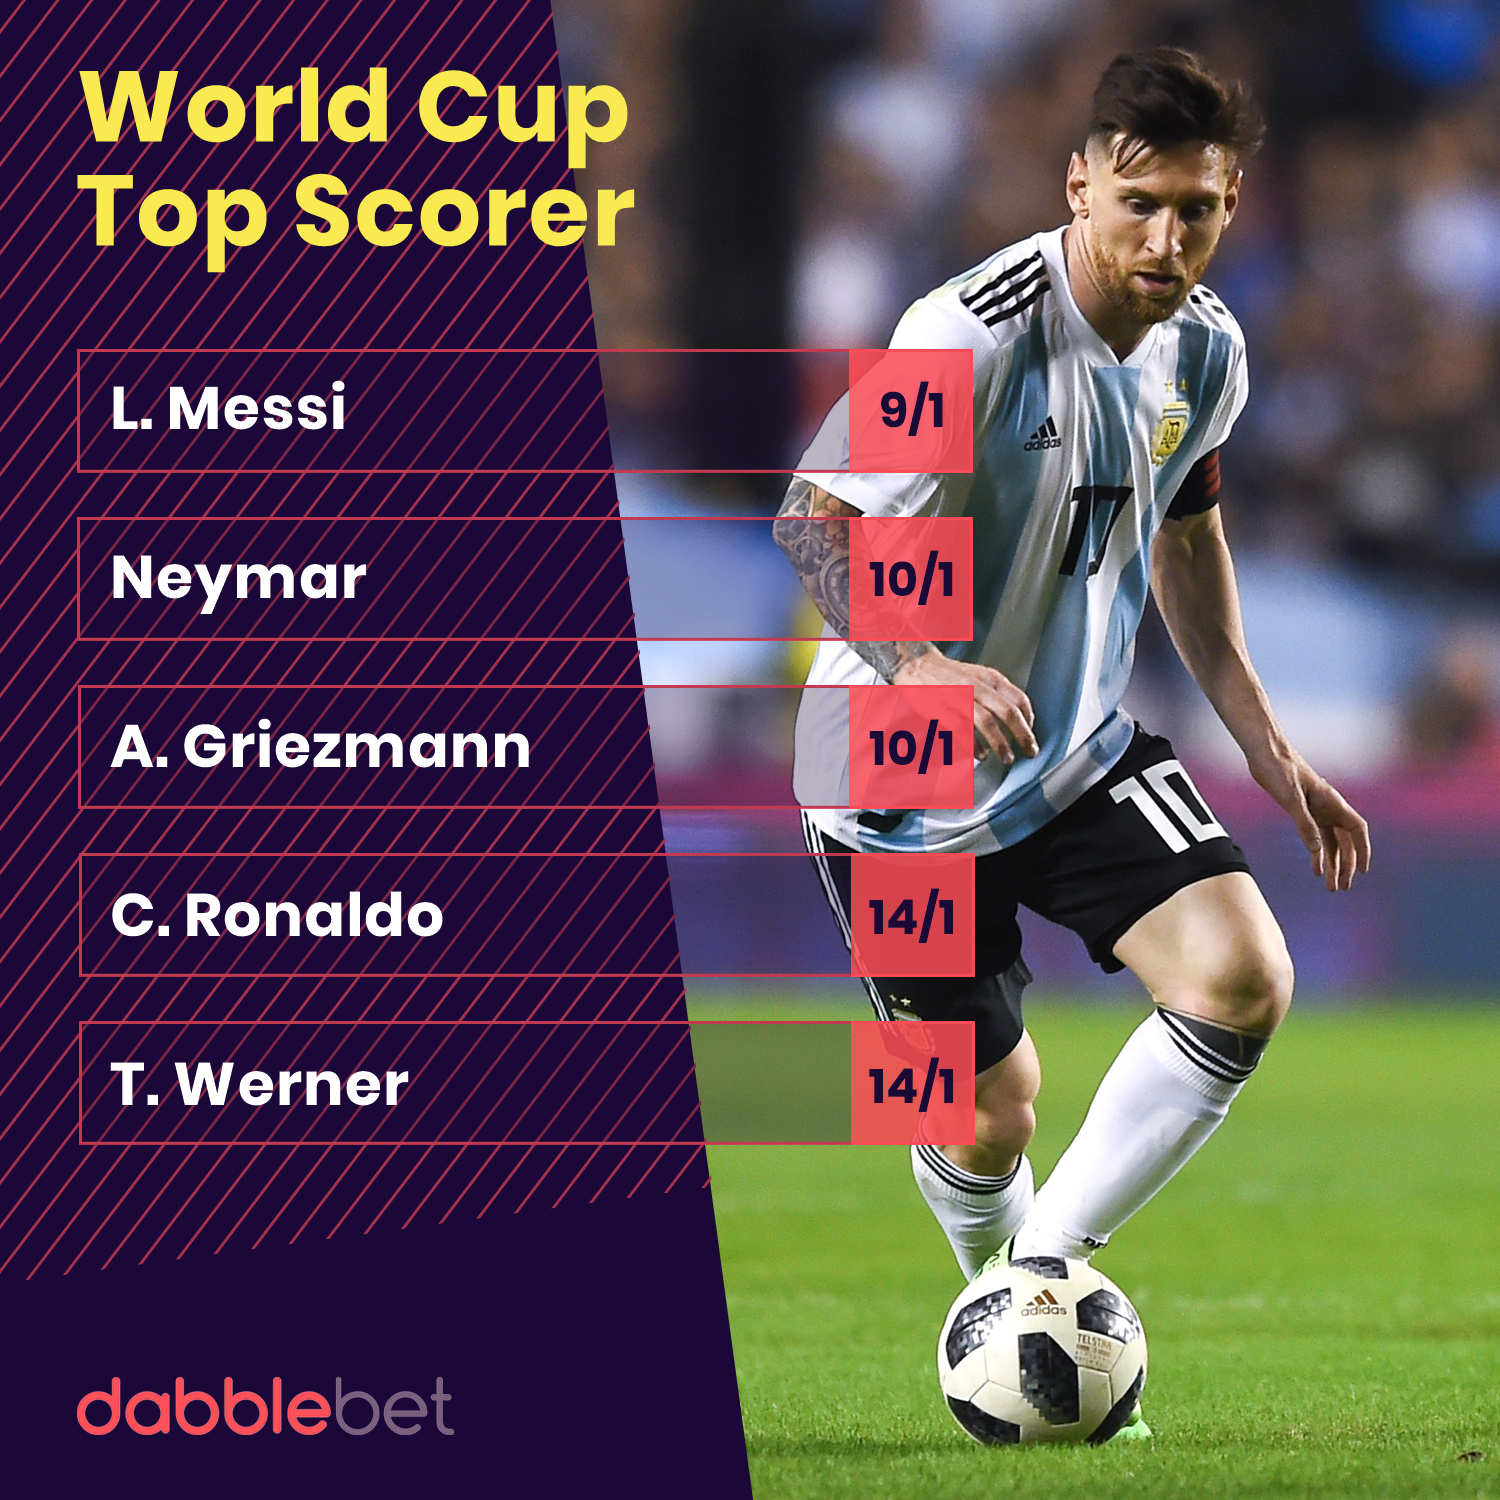 World Cup Top Scorer Preview